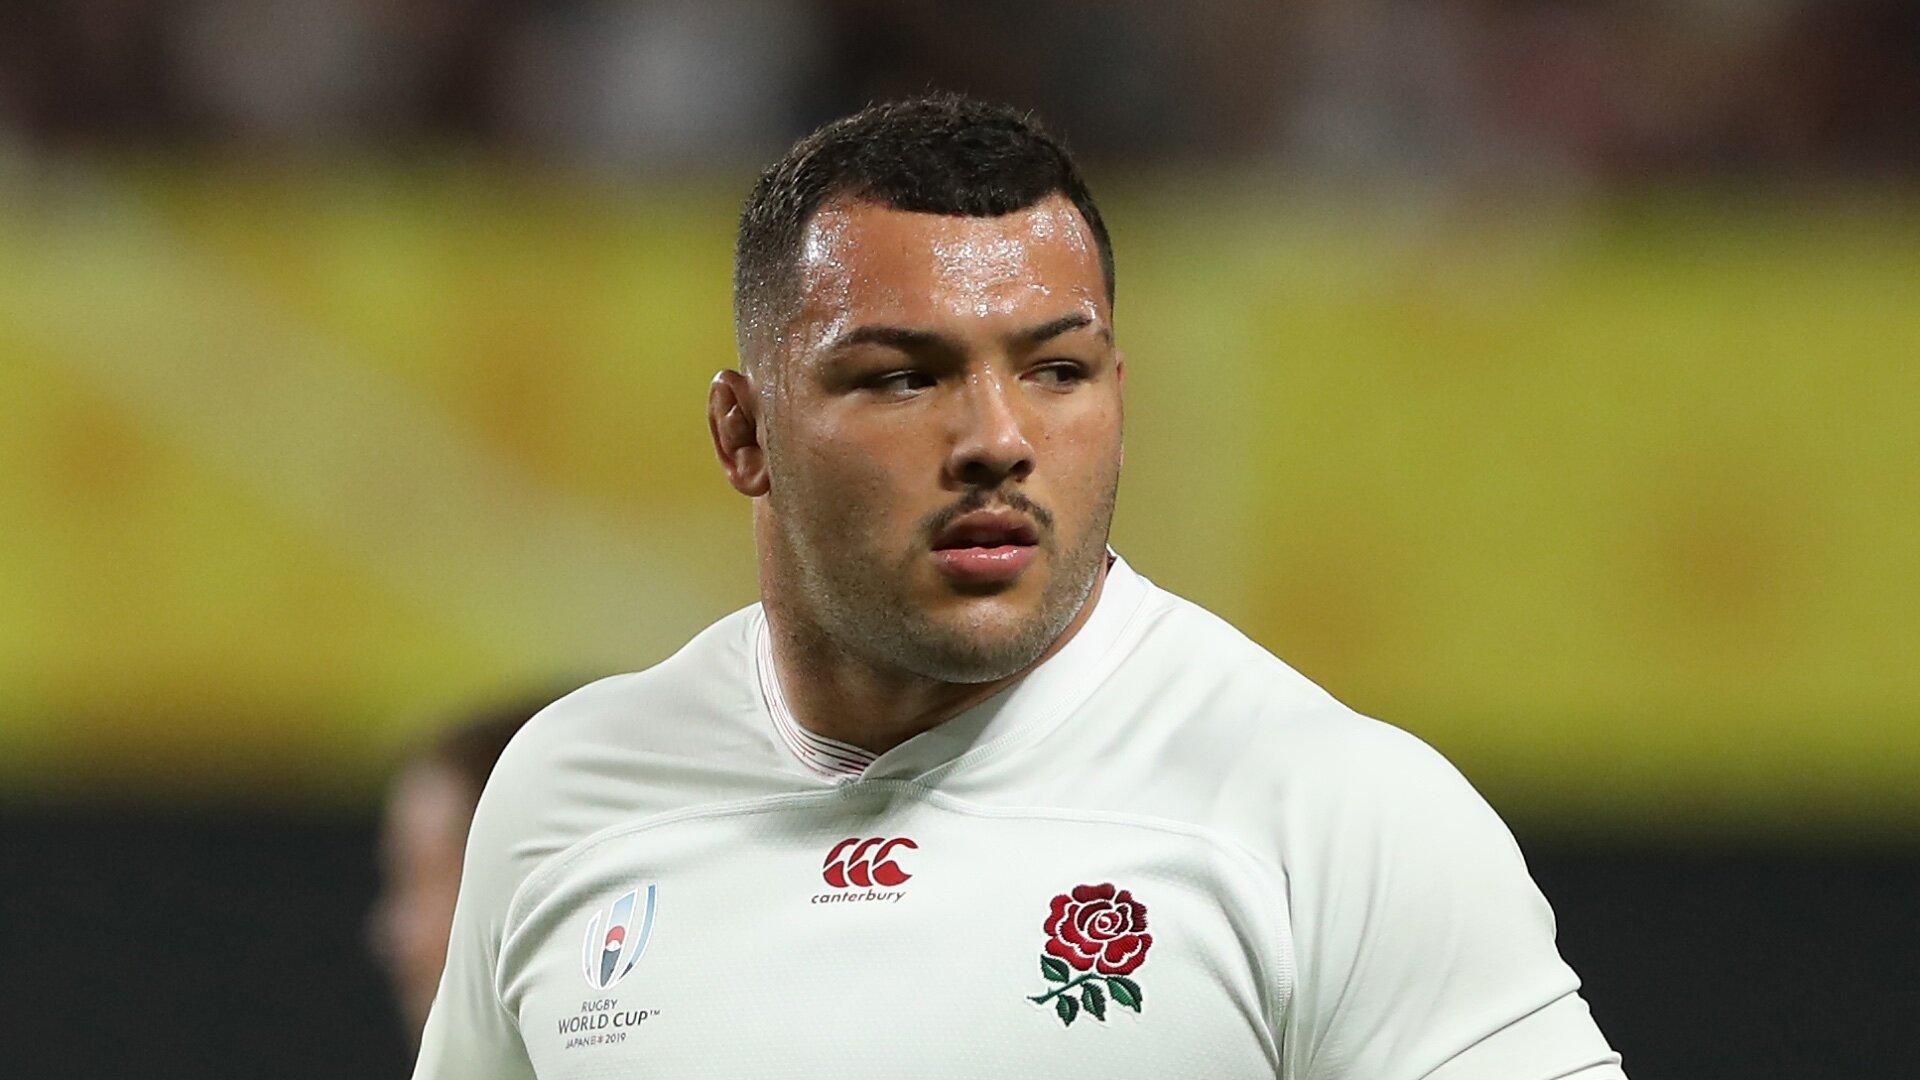 England prop Ellis Genge demands overhaul of 'outdated' rugby contracts